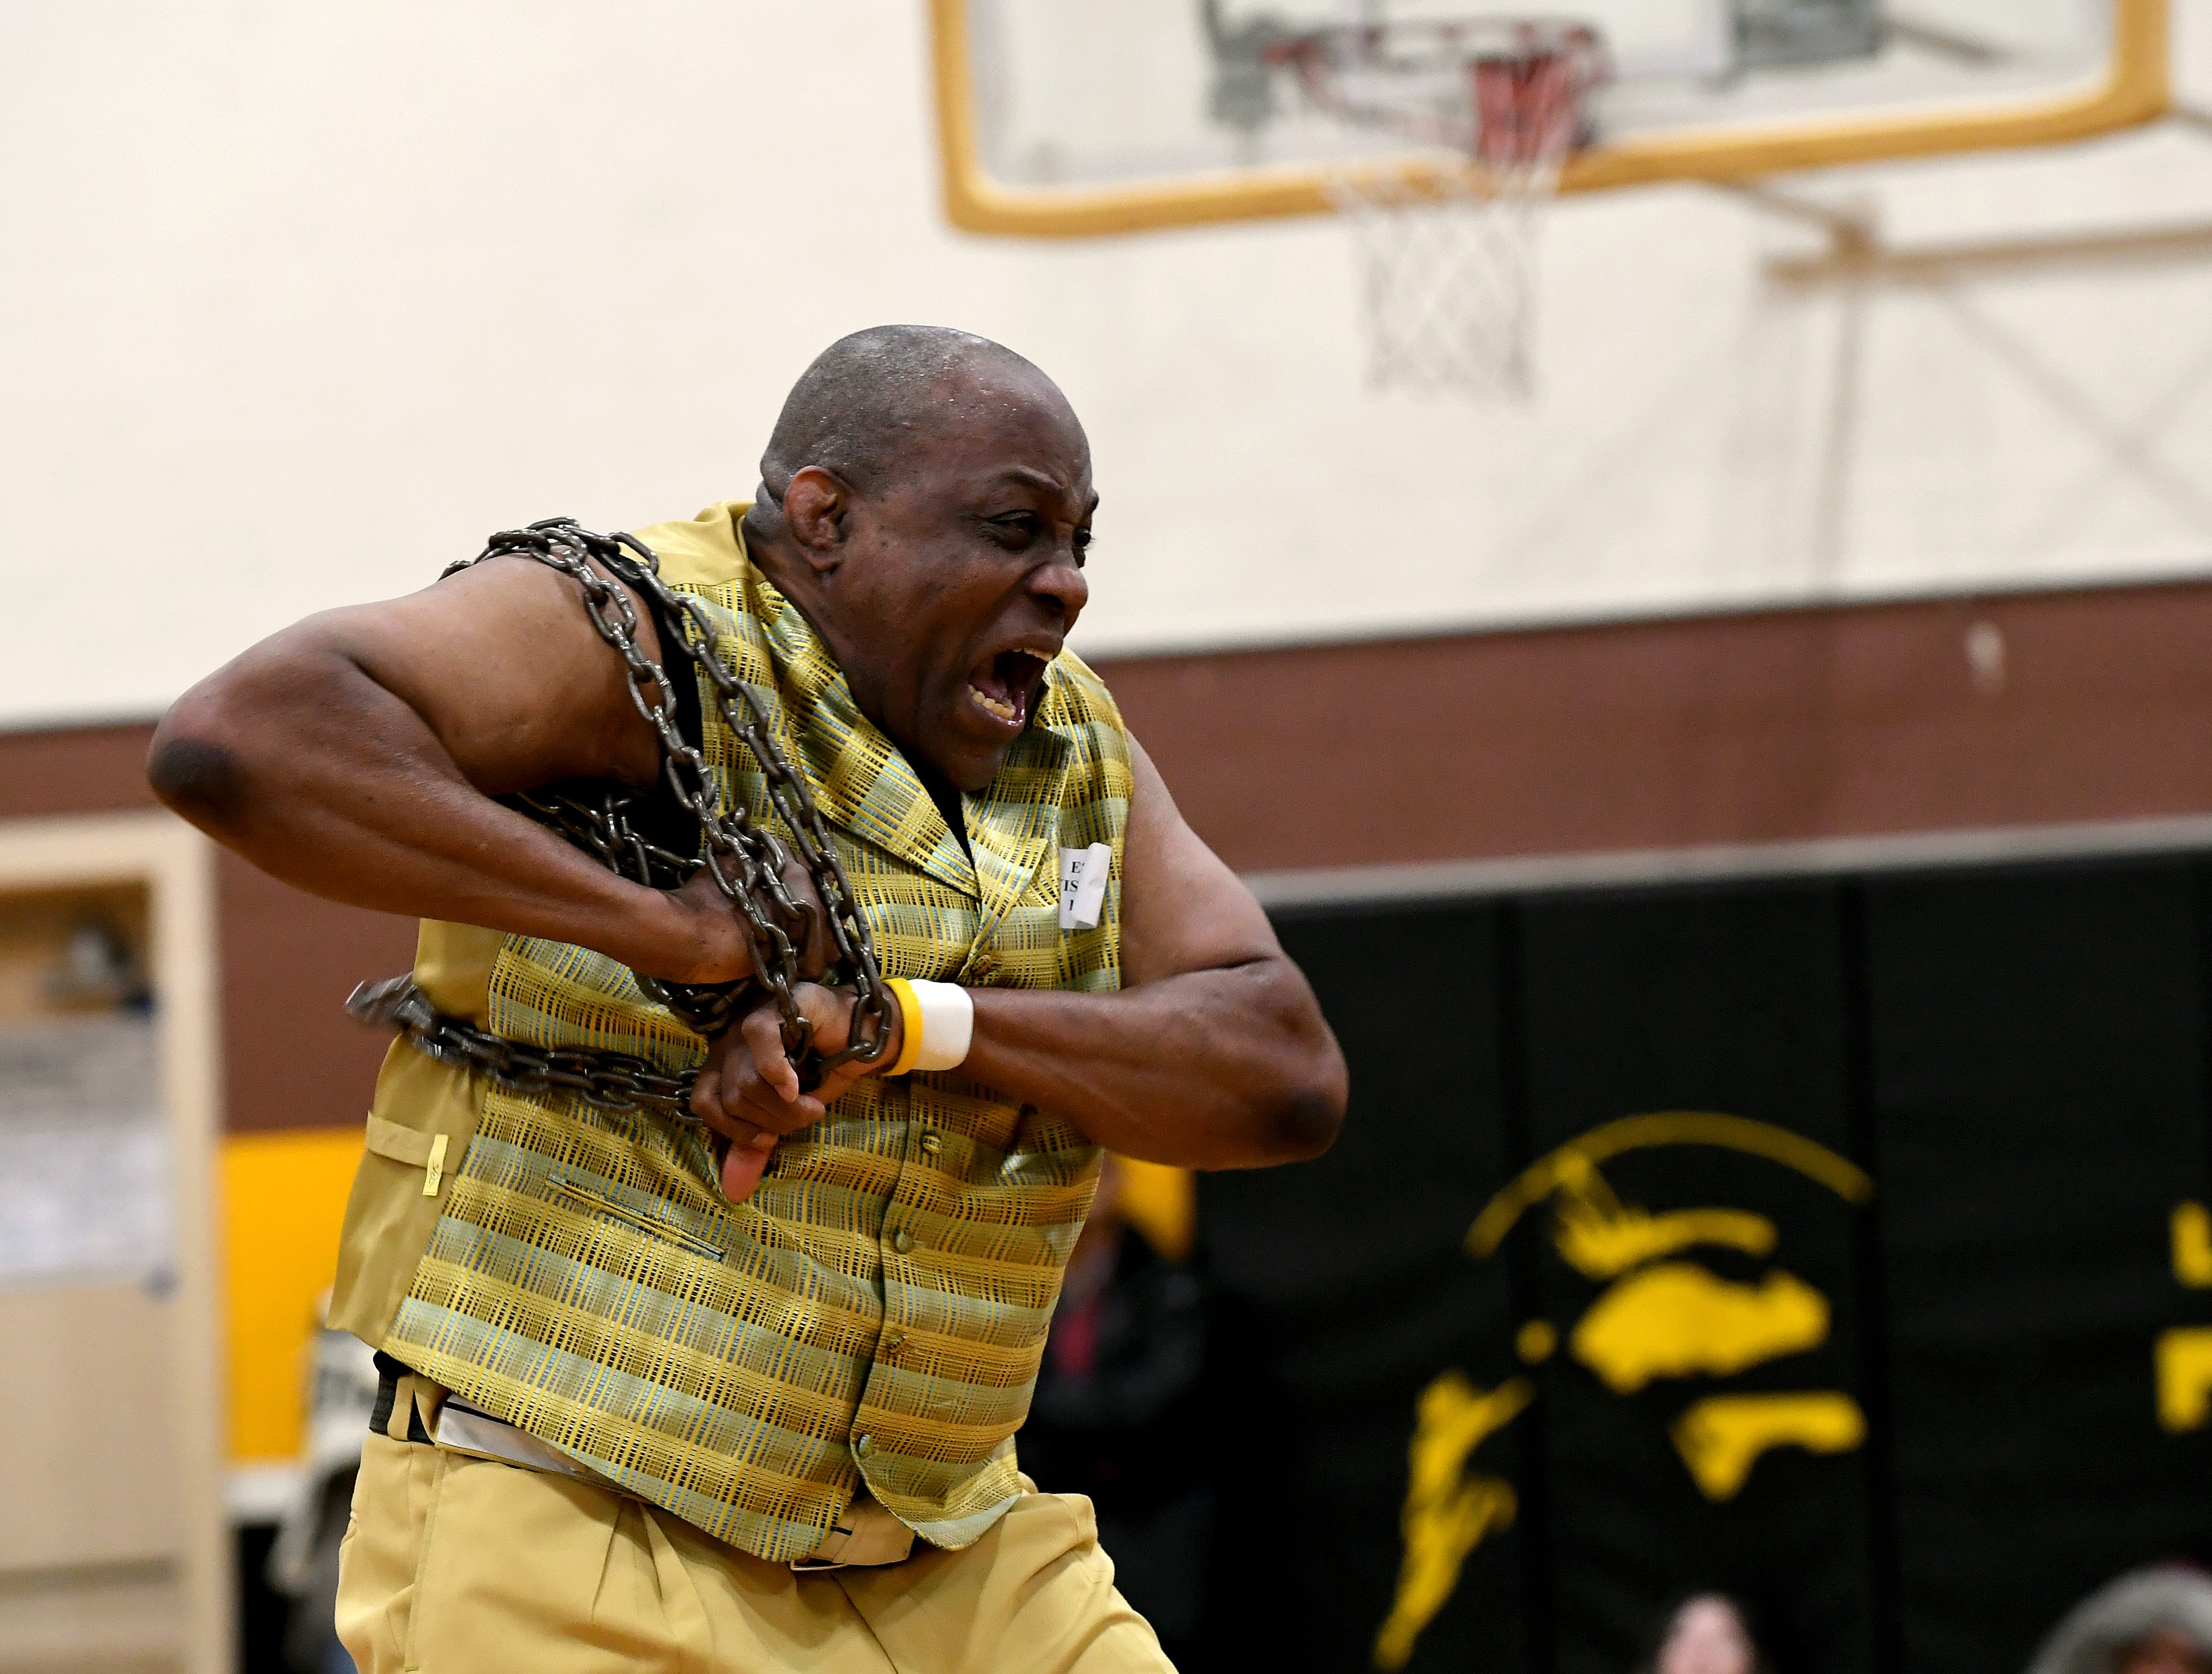 James Thompson yells during his performance with a heavy chain at El Sausal Middle School Feb. 21, 2019.